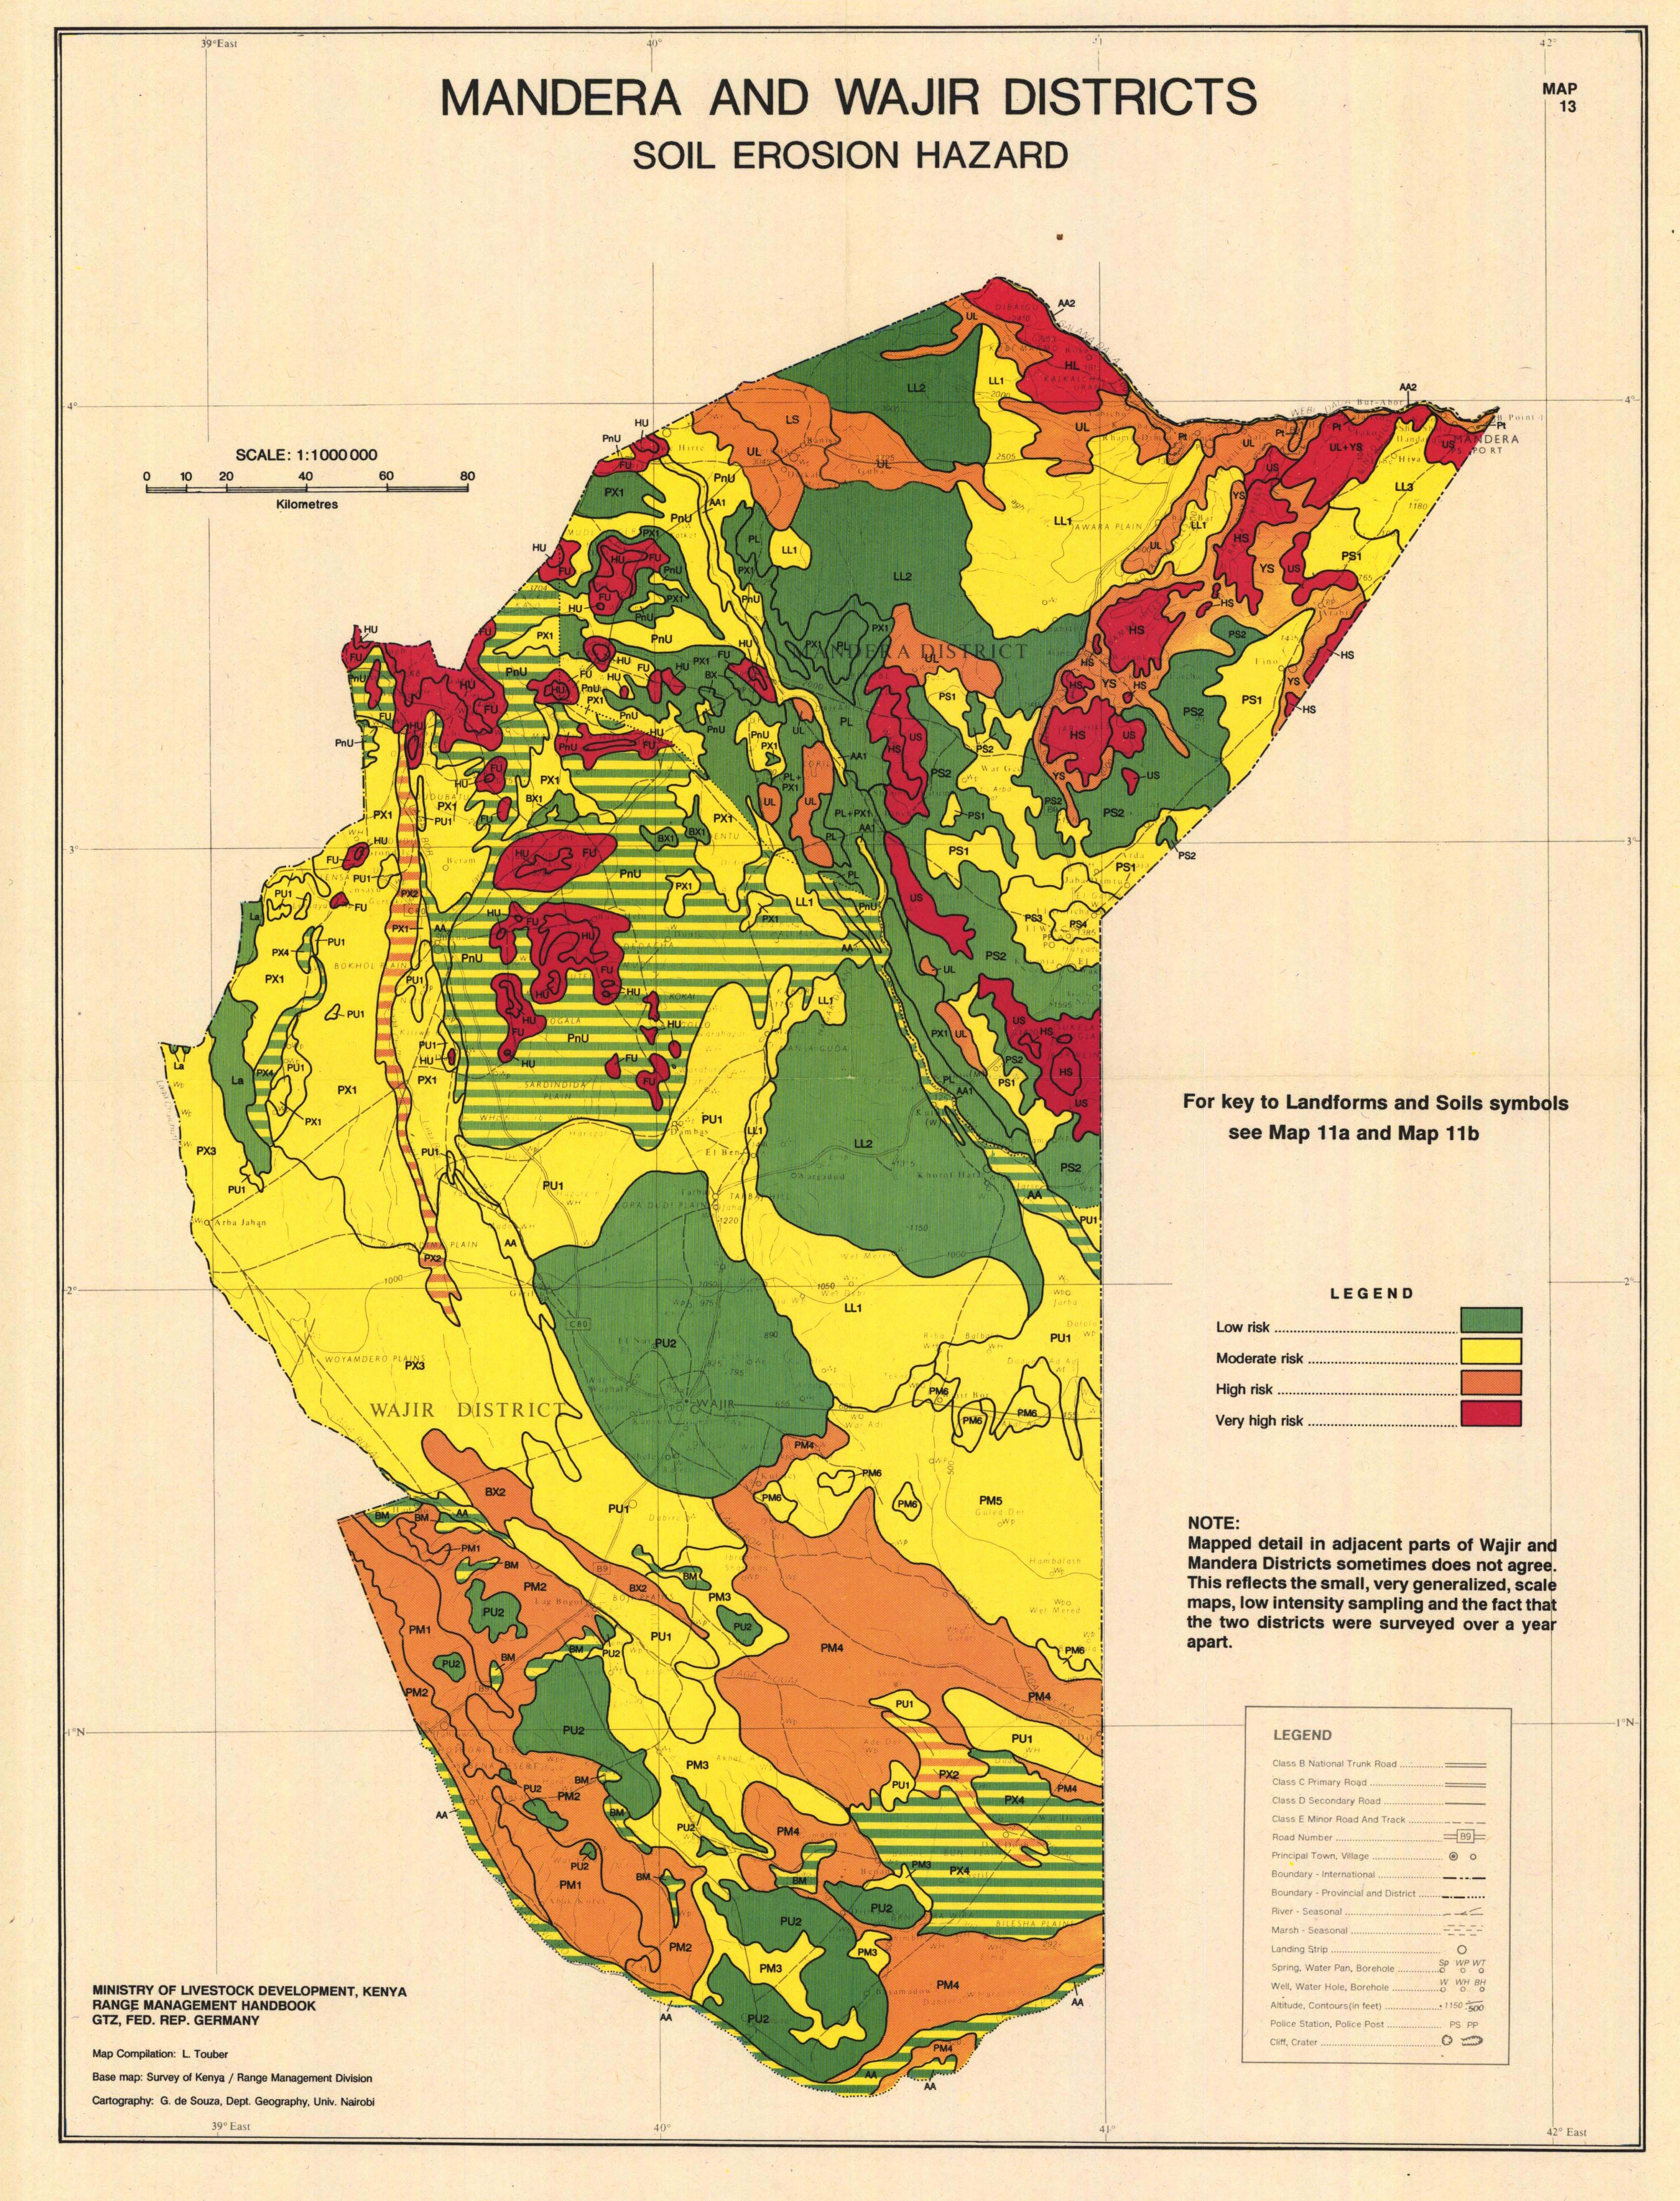 National soil maps eudasm esdac european commission mandera and wajir districts soil erosion hazard map 13 for key to landforms and soils symbols see map 11a and map 11b gumiabroncs Images